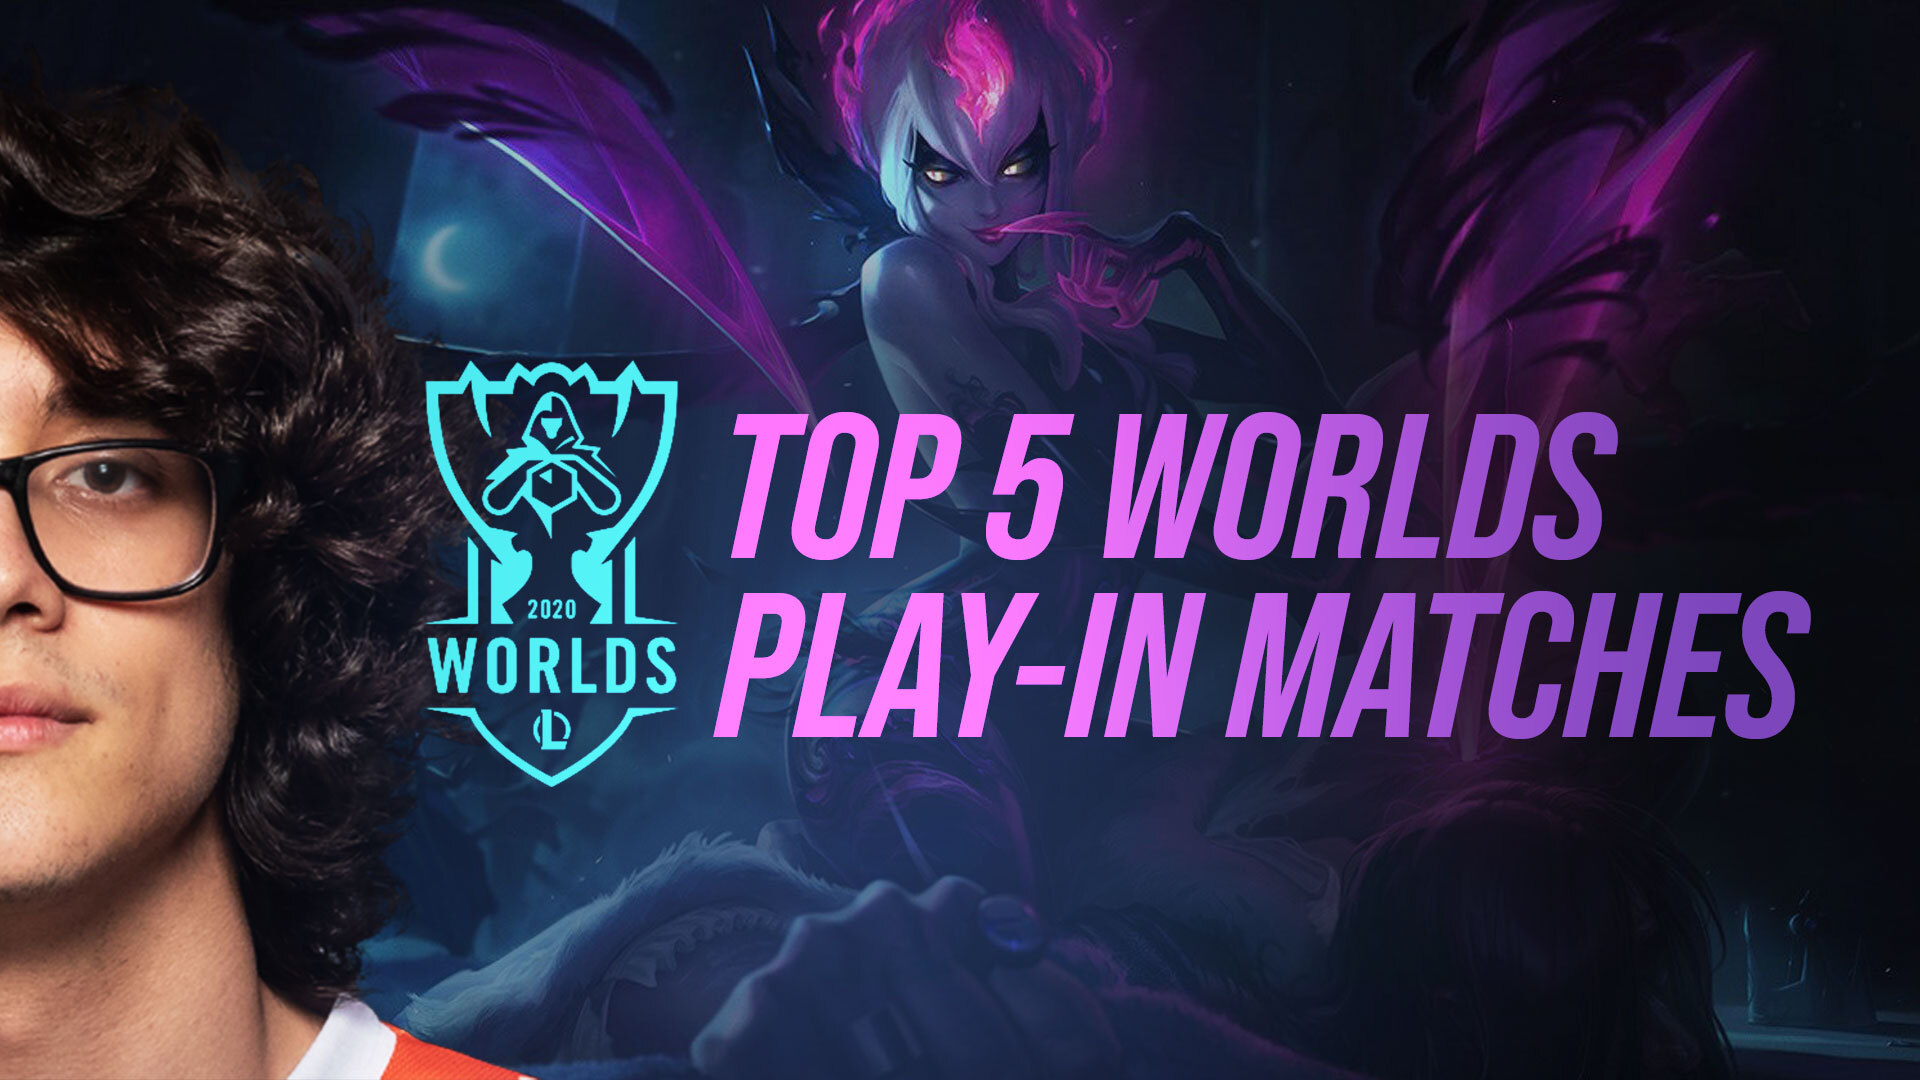 Worlds 2020 Best Play-Ins Matches